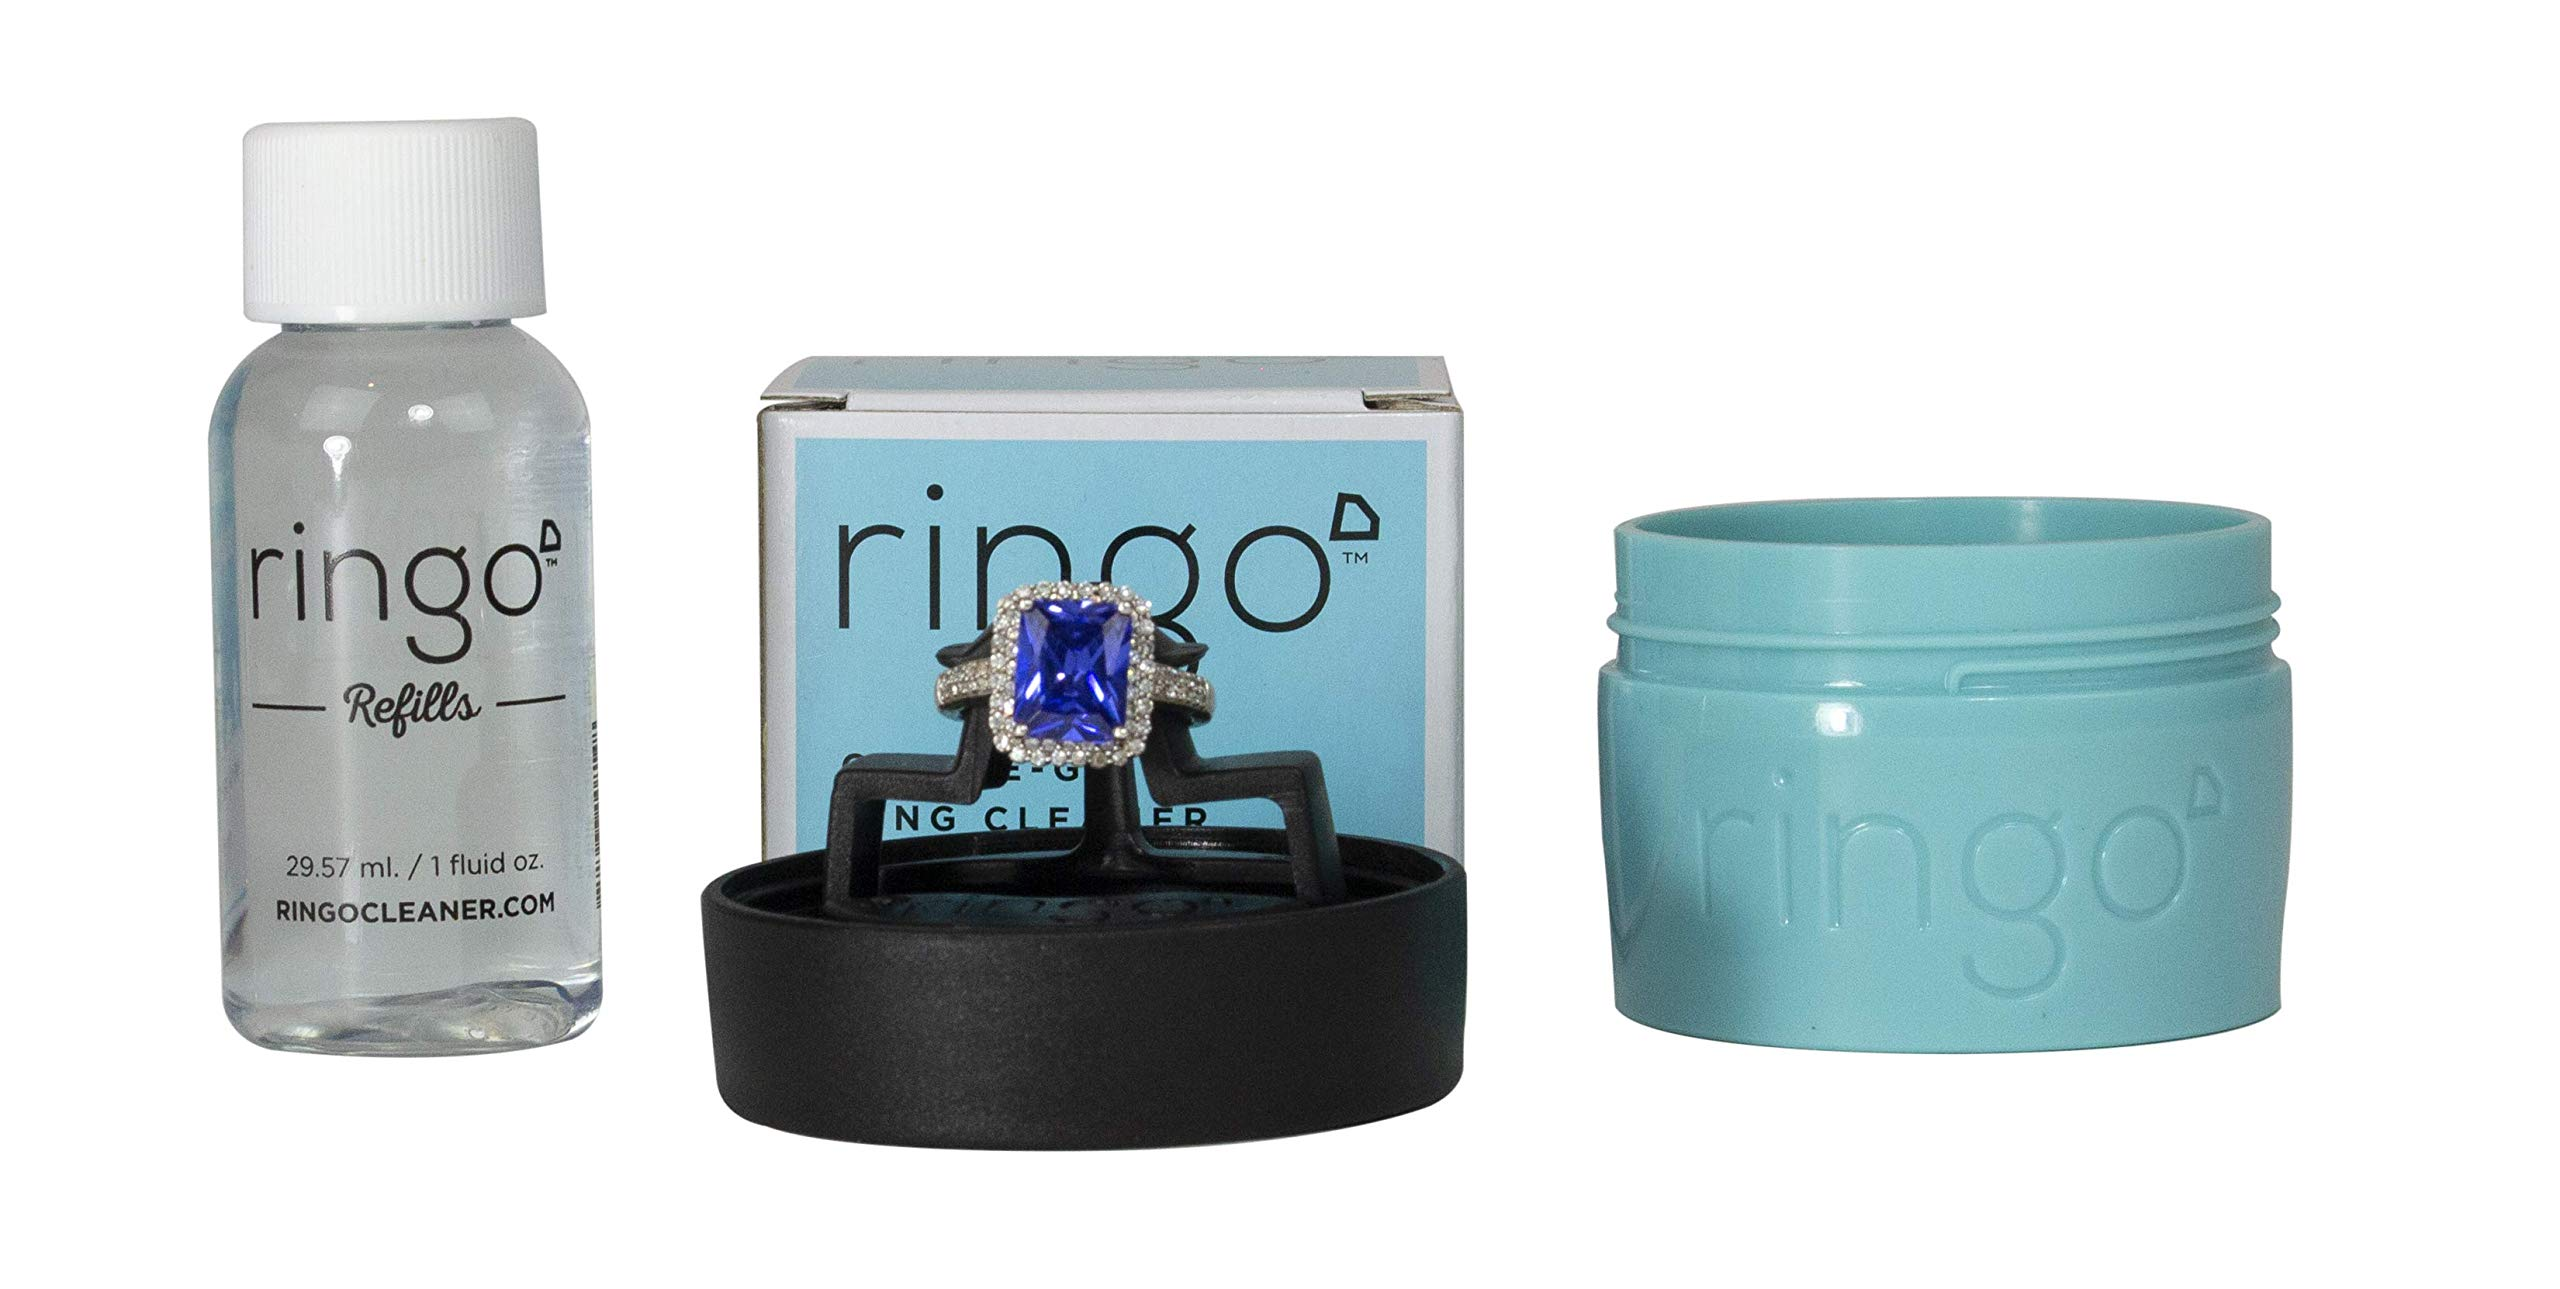 Ringo :: On-The-Go Portable Ring Jewelry Cleaner (Gift Set) (Blue)